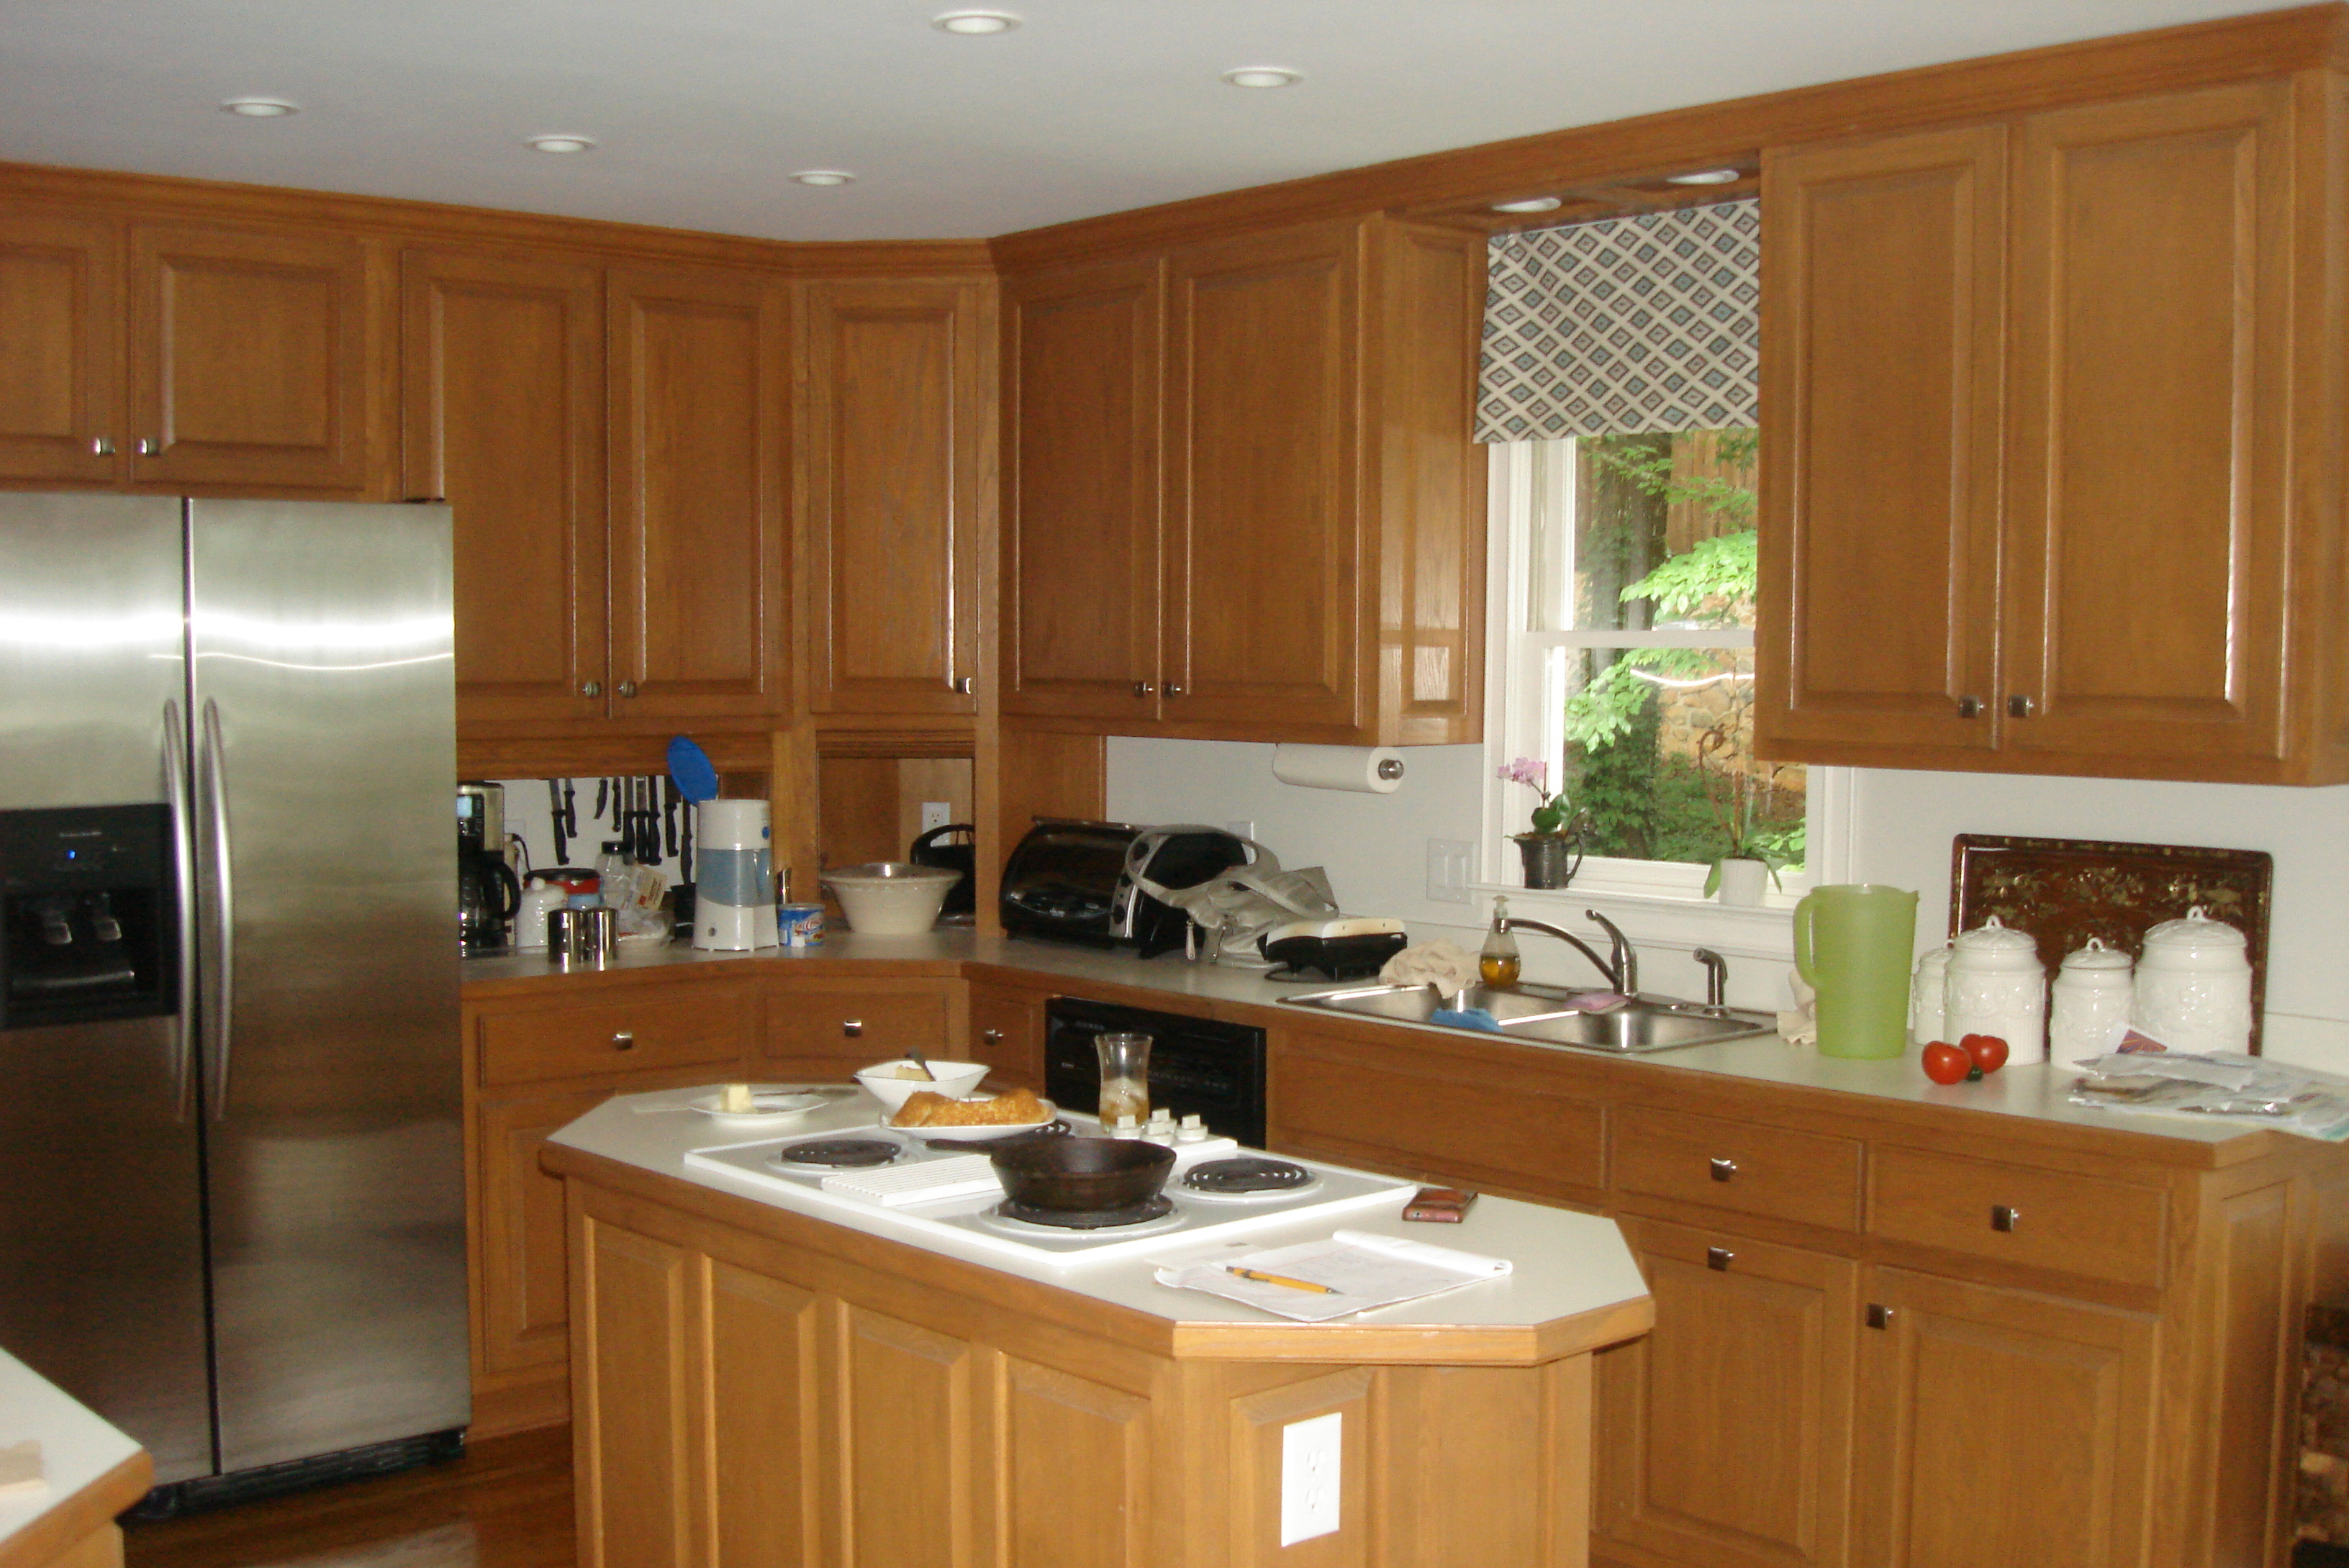 ordinary Kitchen Remodeling Alpharetta Ga #4: Check out more company information on our Google Local Business - Remodeling  Alpharetta, GA